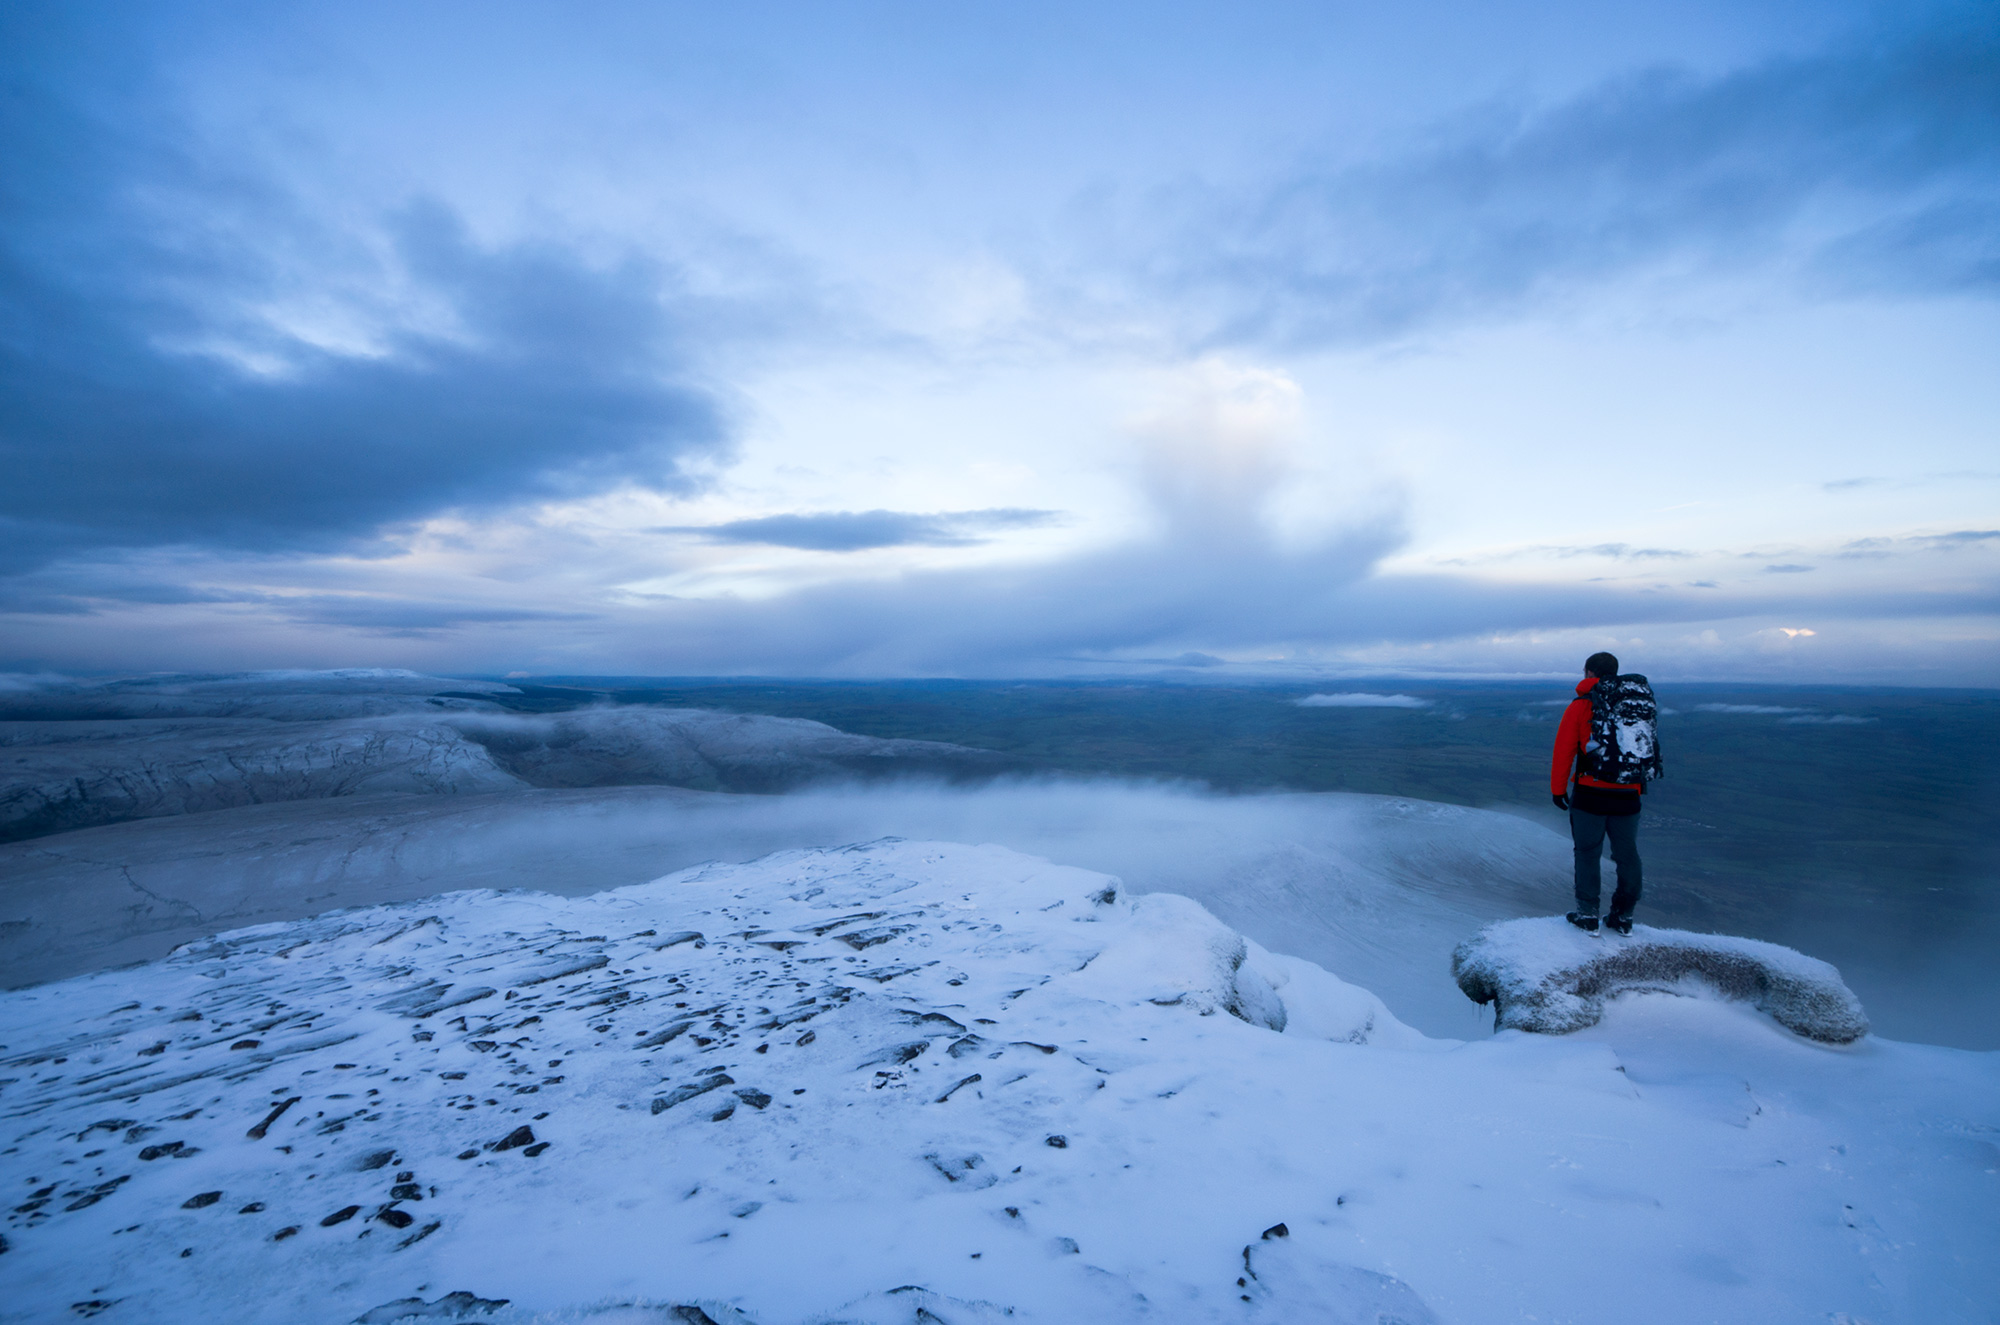 Cold, but worth it - The view from Corn Du, Brecon Beacons NP